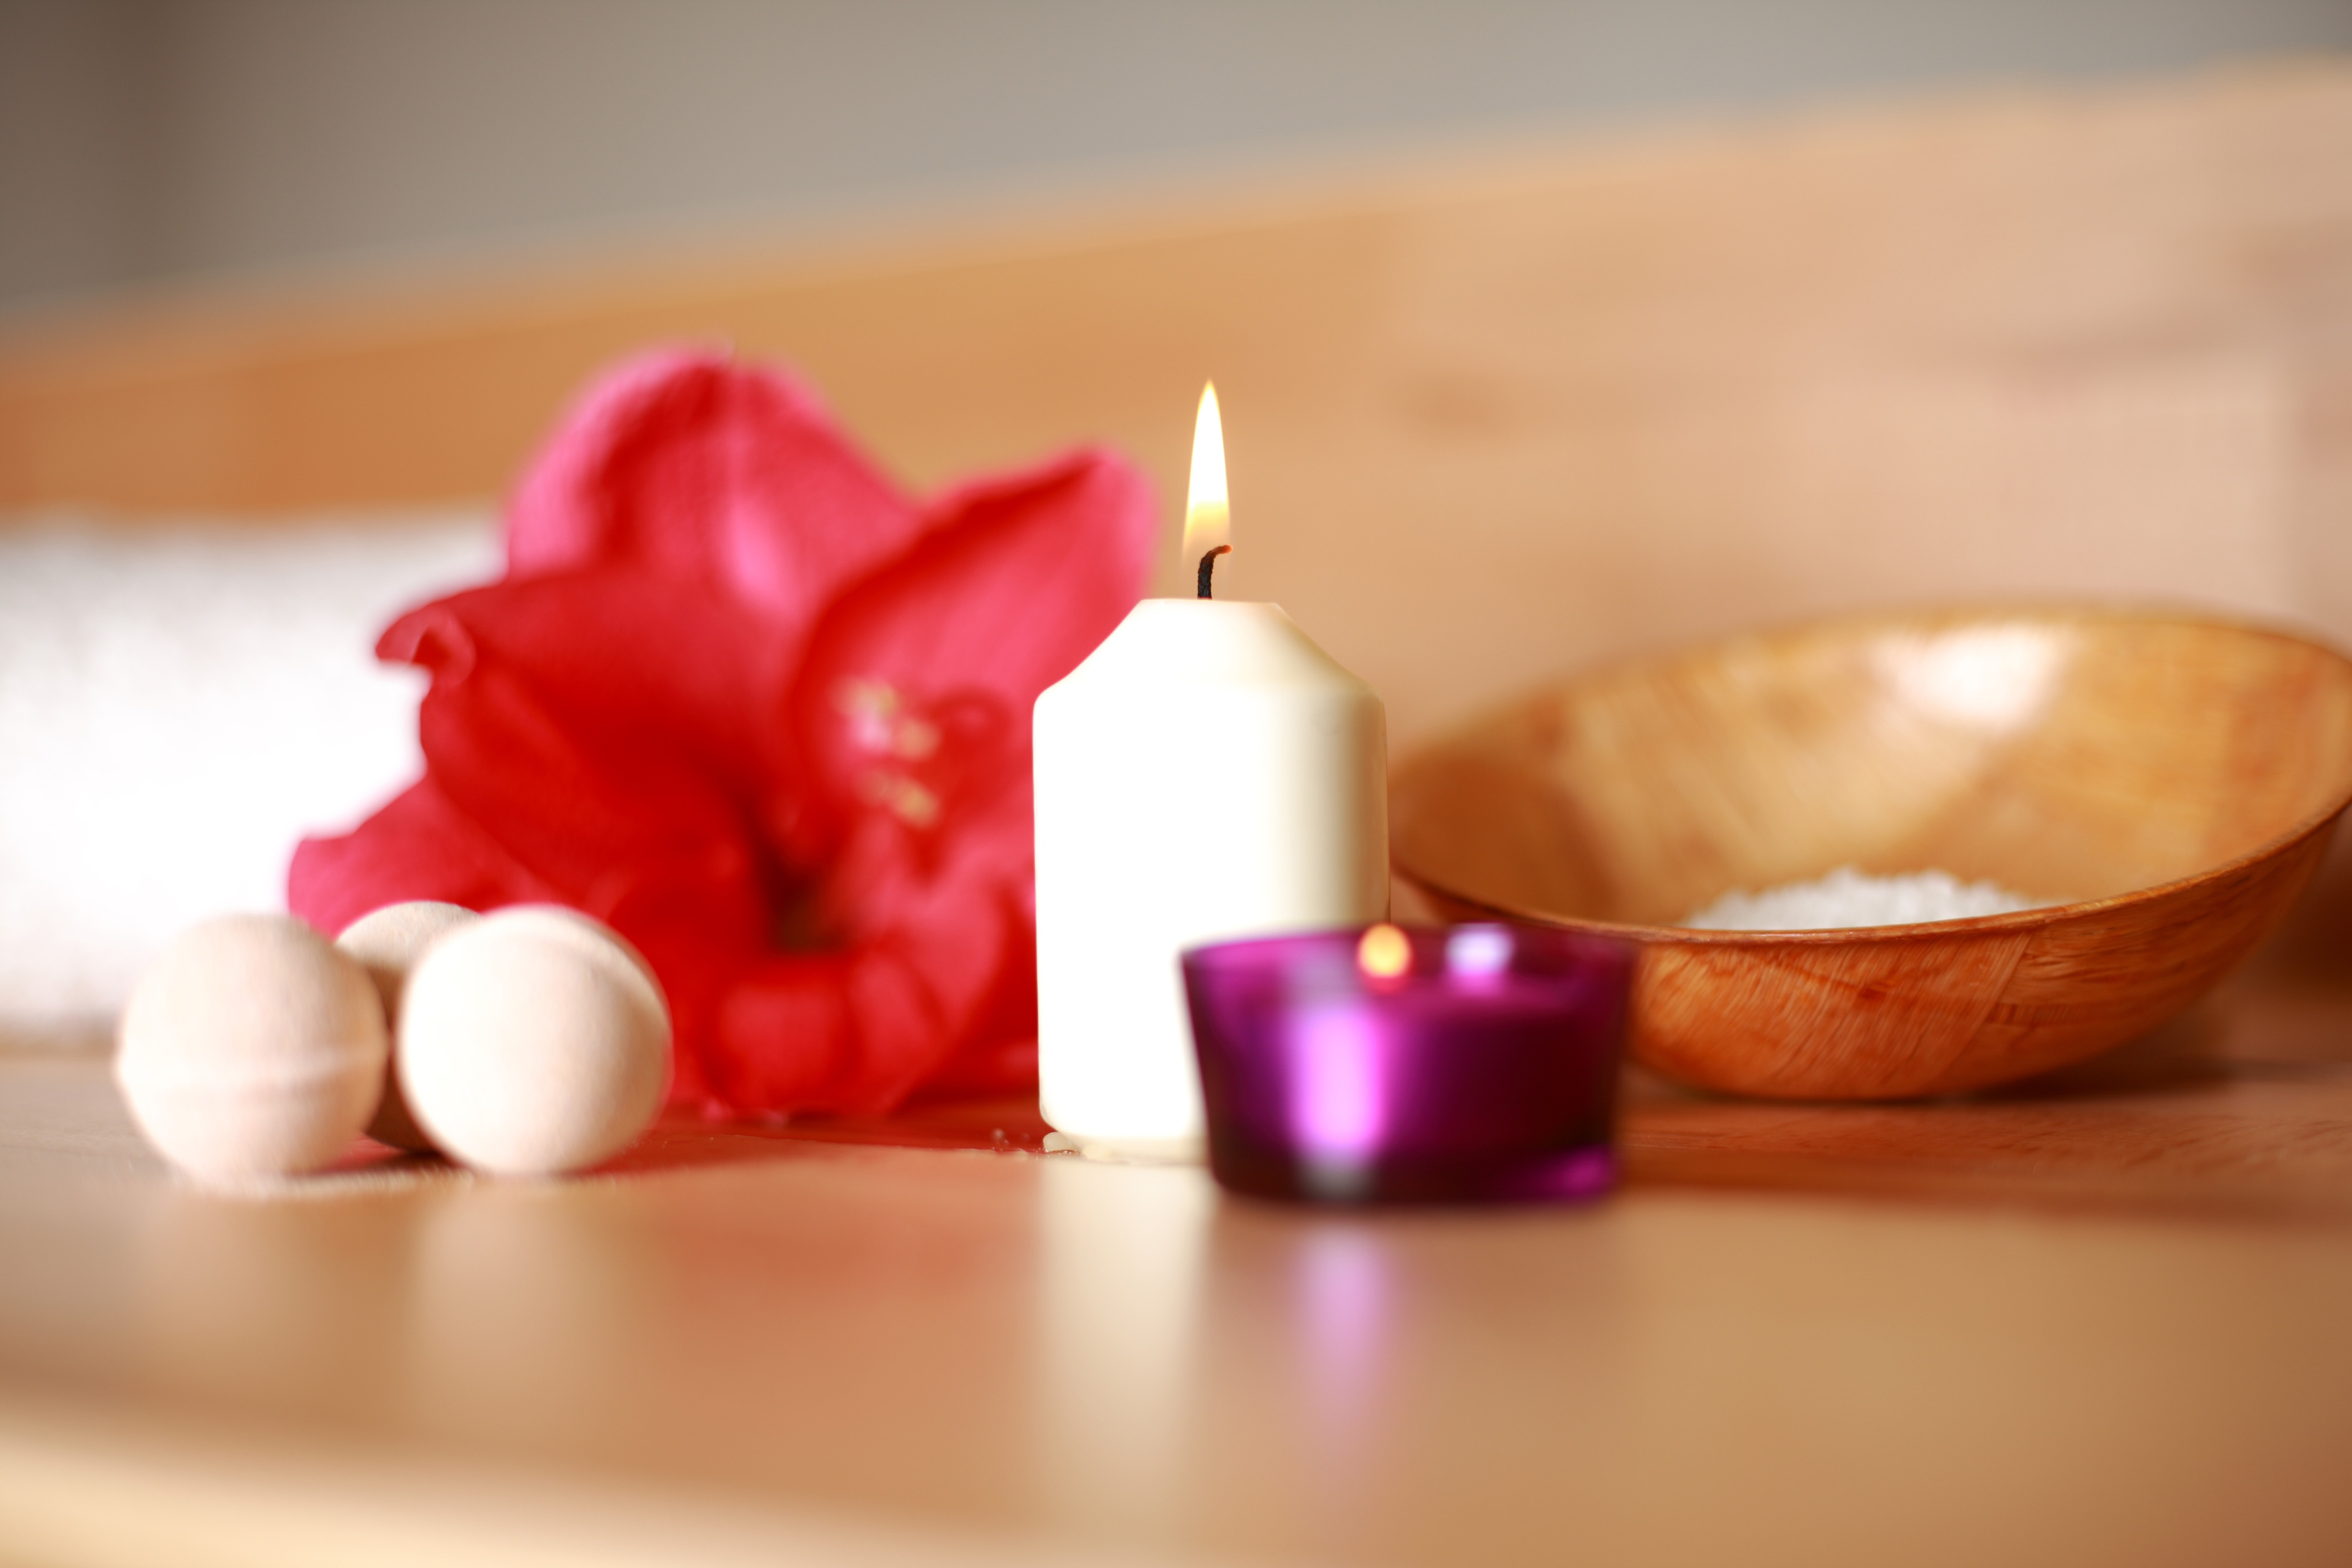 wood-flower-petal-food-relax-candle-1166098-pxhere.com